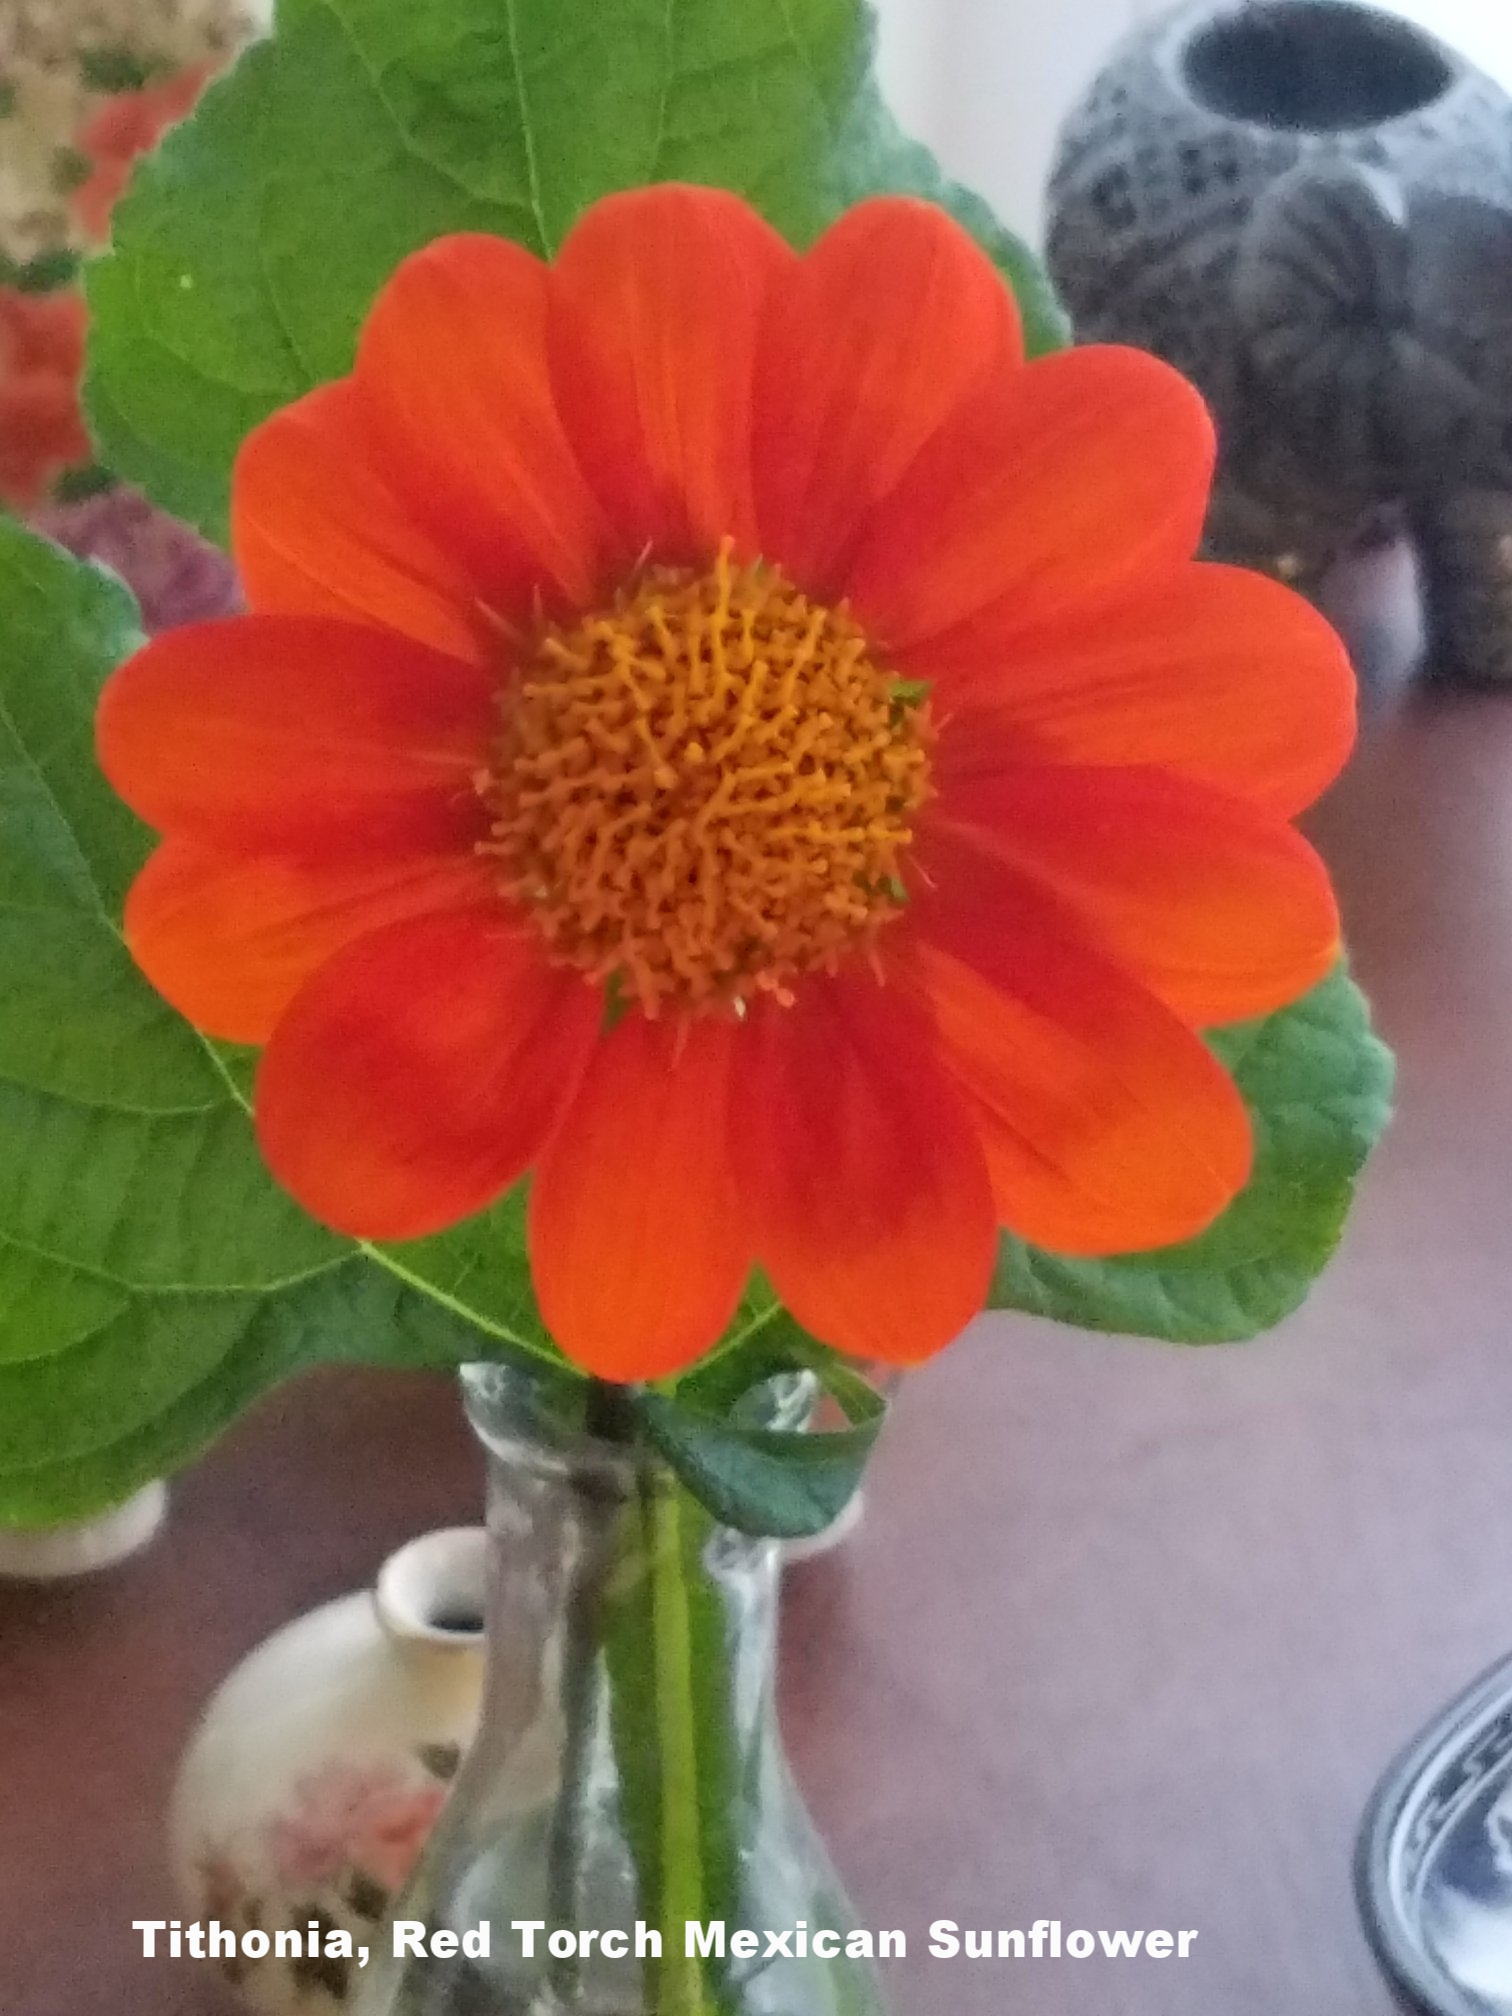 Tithonia, Red Torch Mexican Sunflower Bloom.jpeg